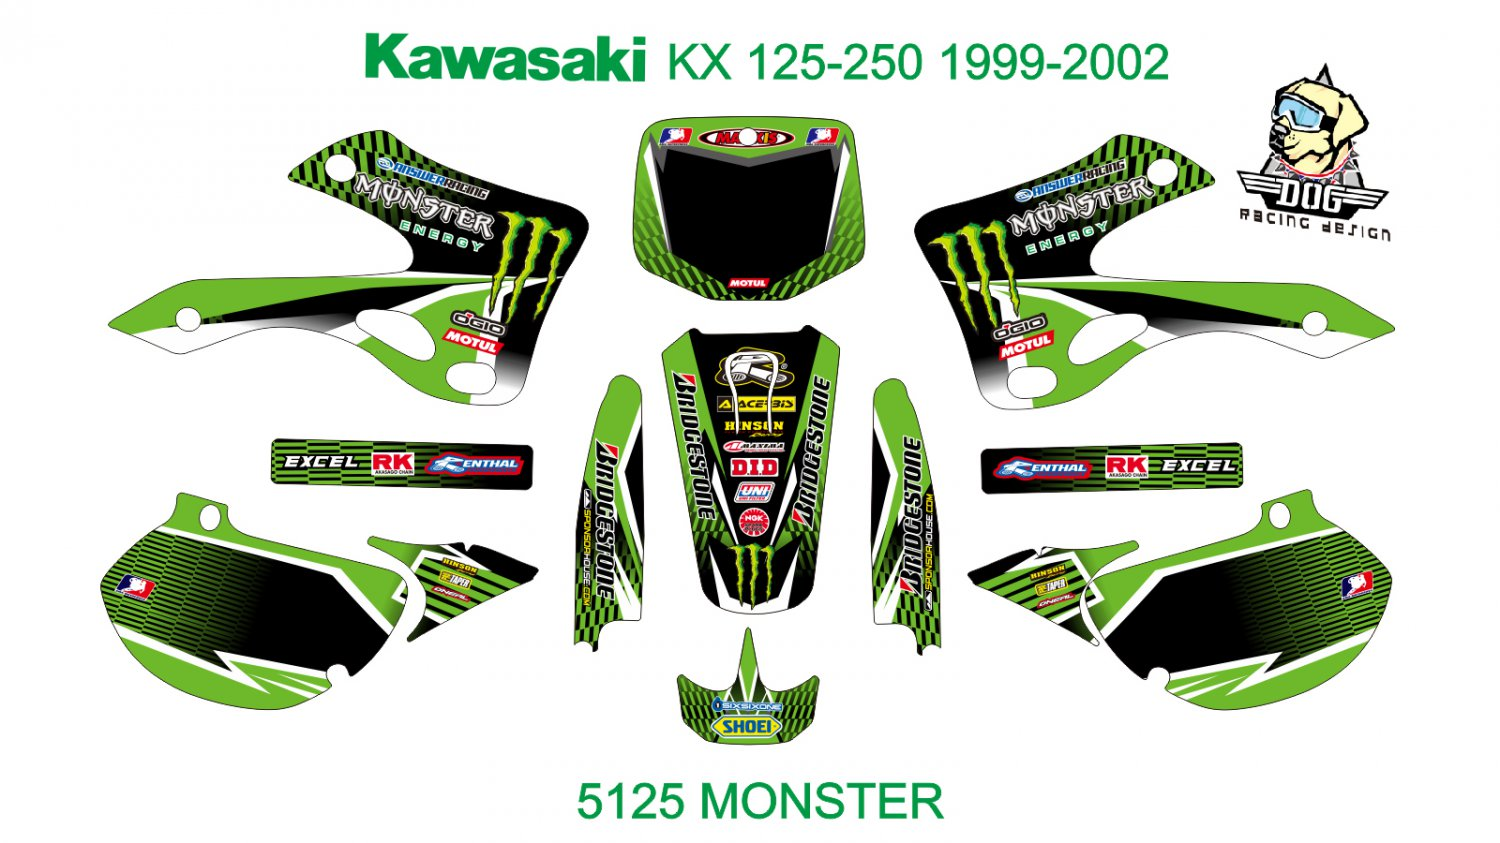 KAWASAKI KX 125-250 1999-2002 GRAPHIC DECAL KIT CODE.5125